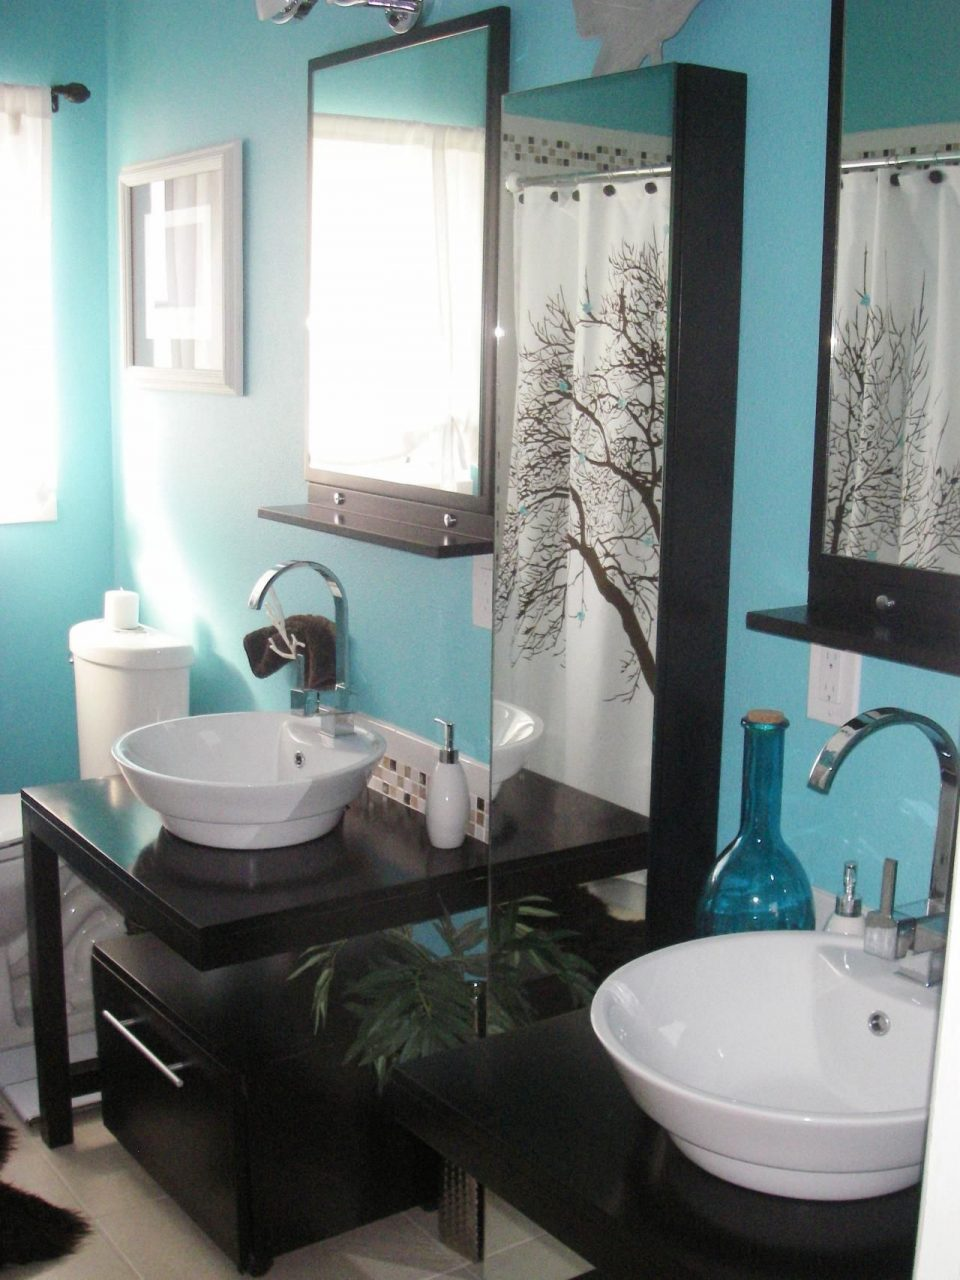 Colorful Bathrooms From Hgtv Fans Furniture Walls Floors Dust